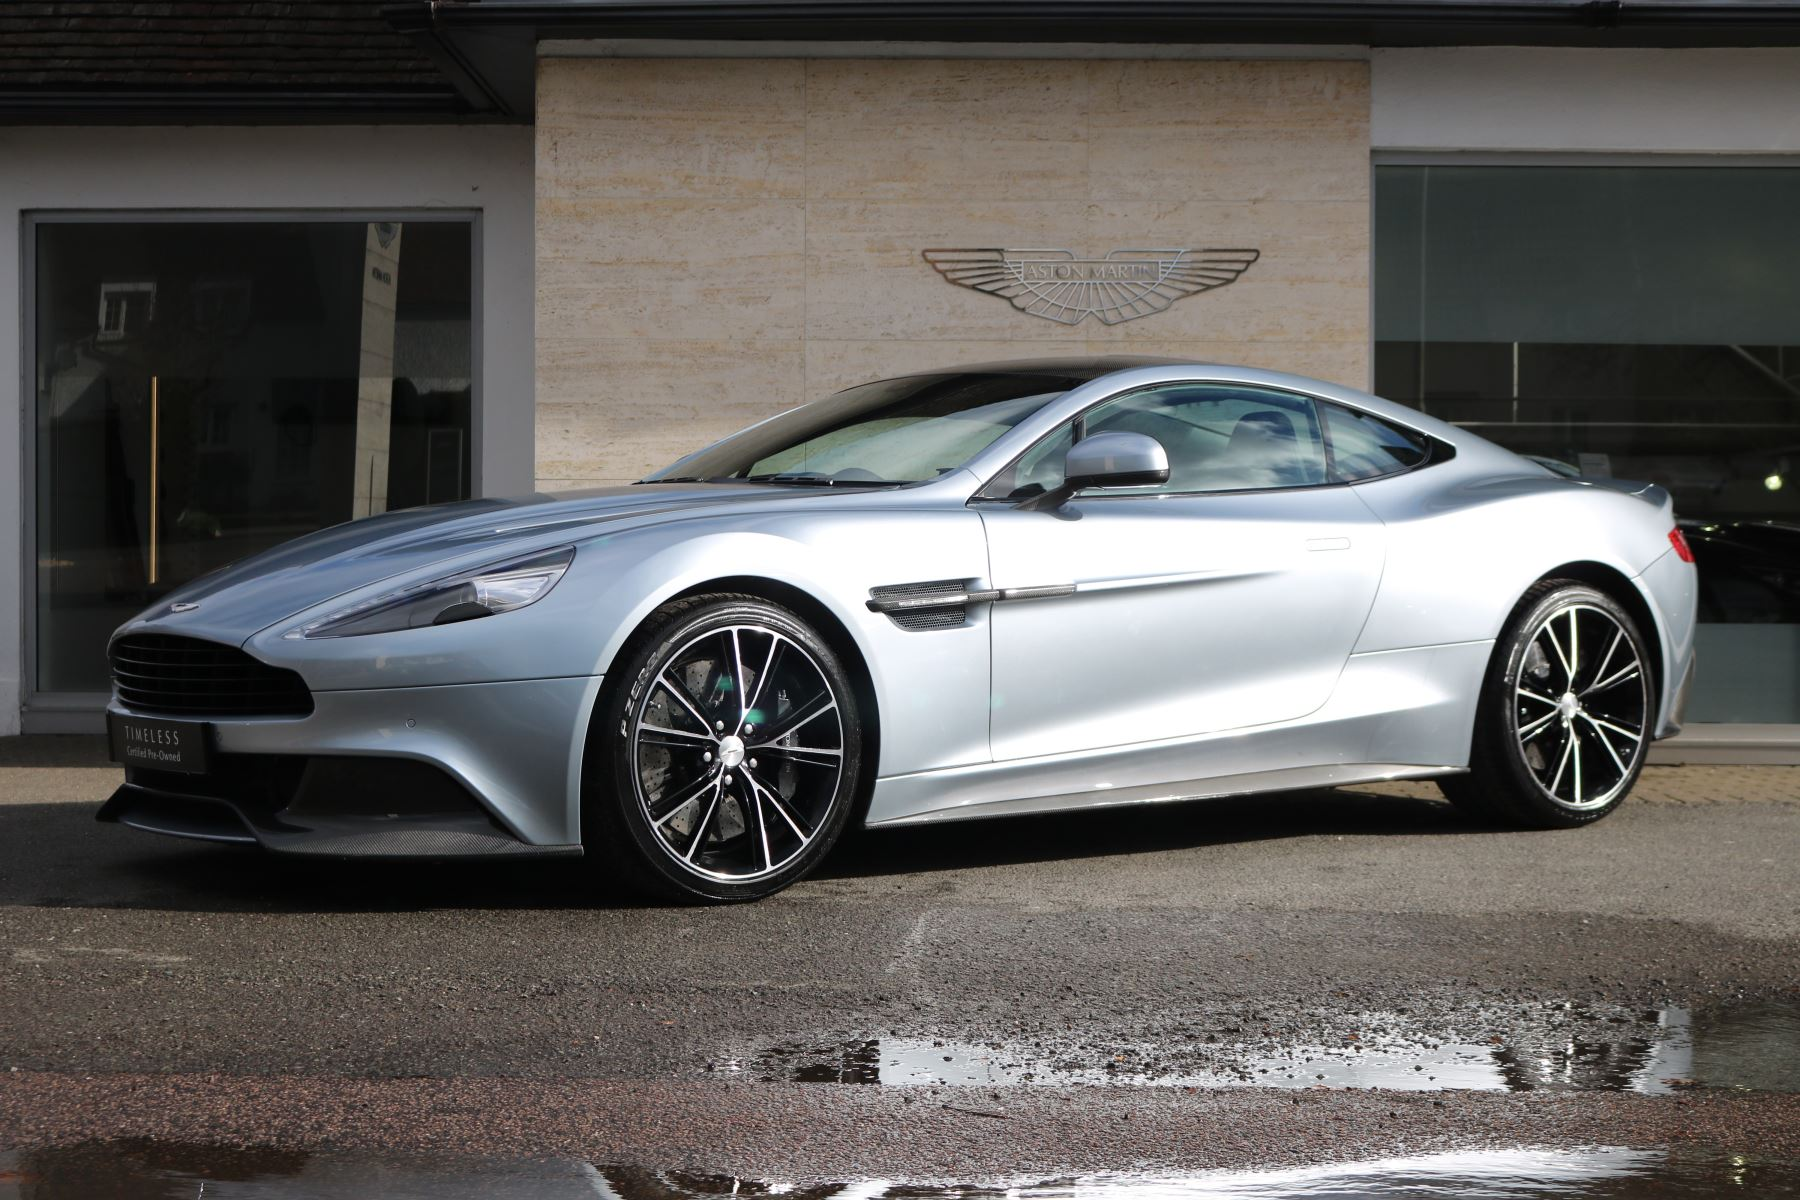 Aston Martin Vanquish Coupe 6.0 Automatic 2 door (17) image